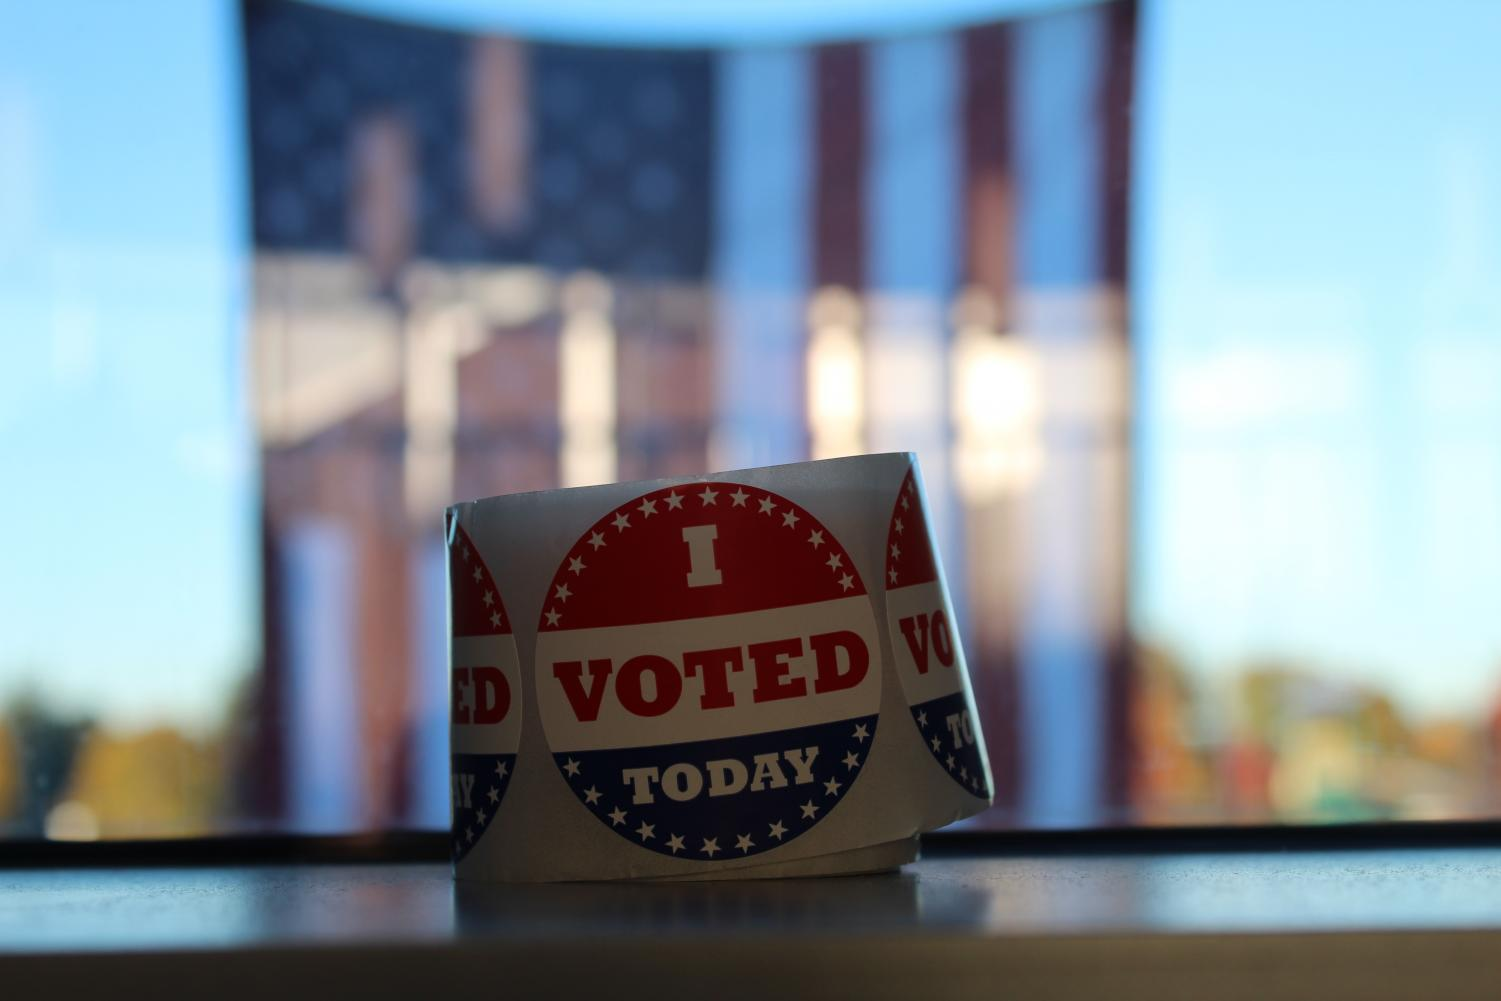 A mock election for the November 6th midterm elections will be held Thursday